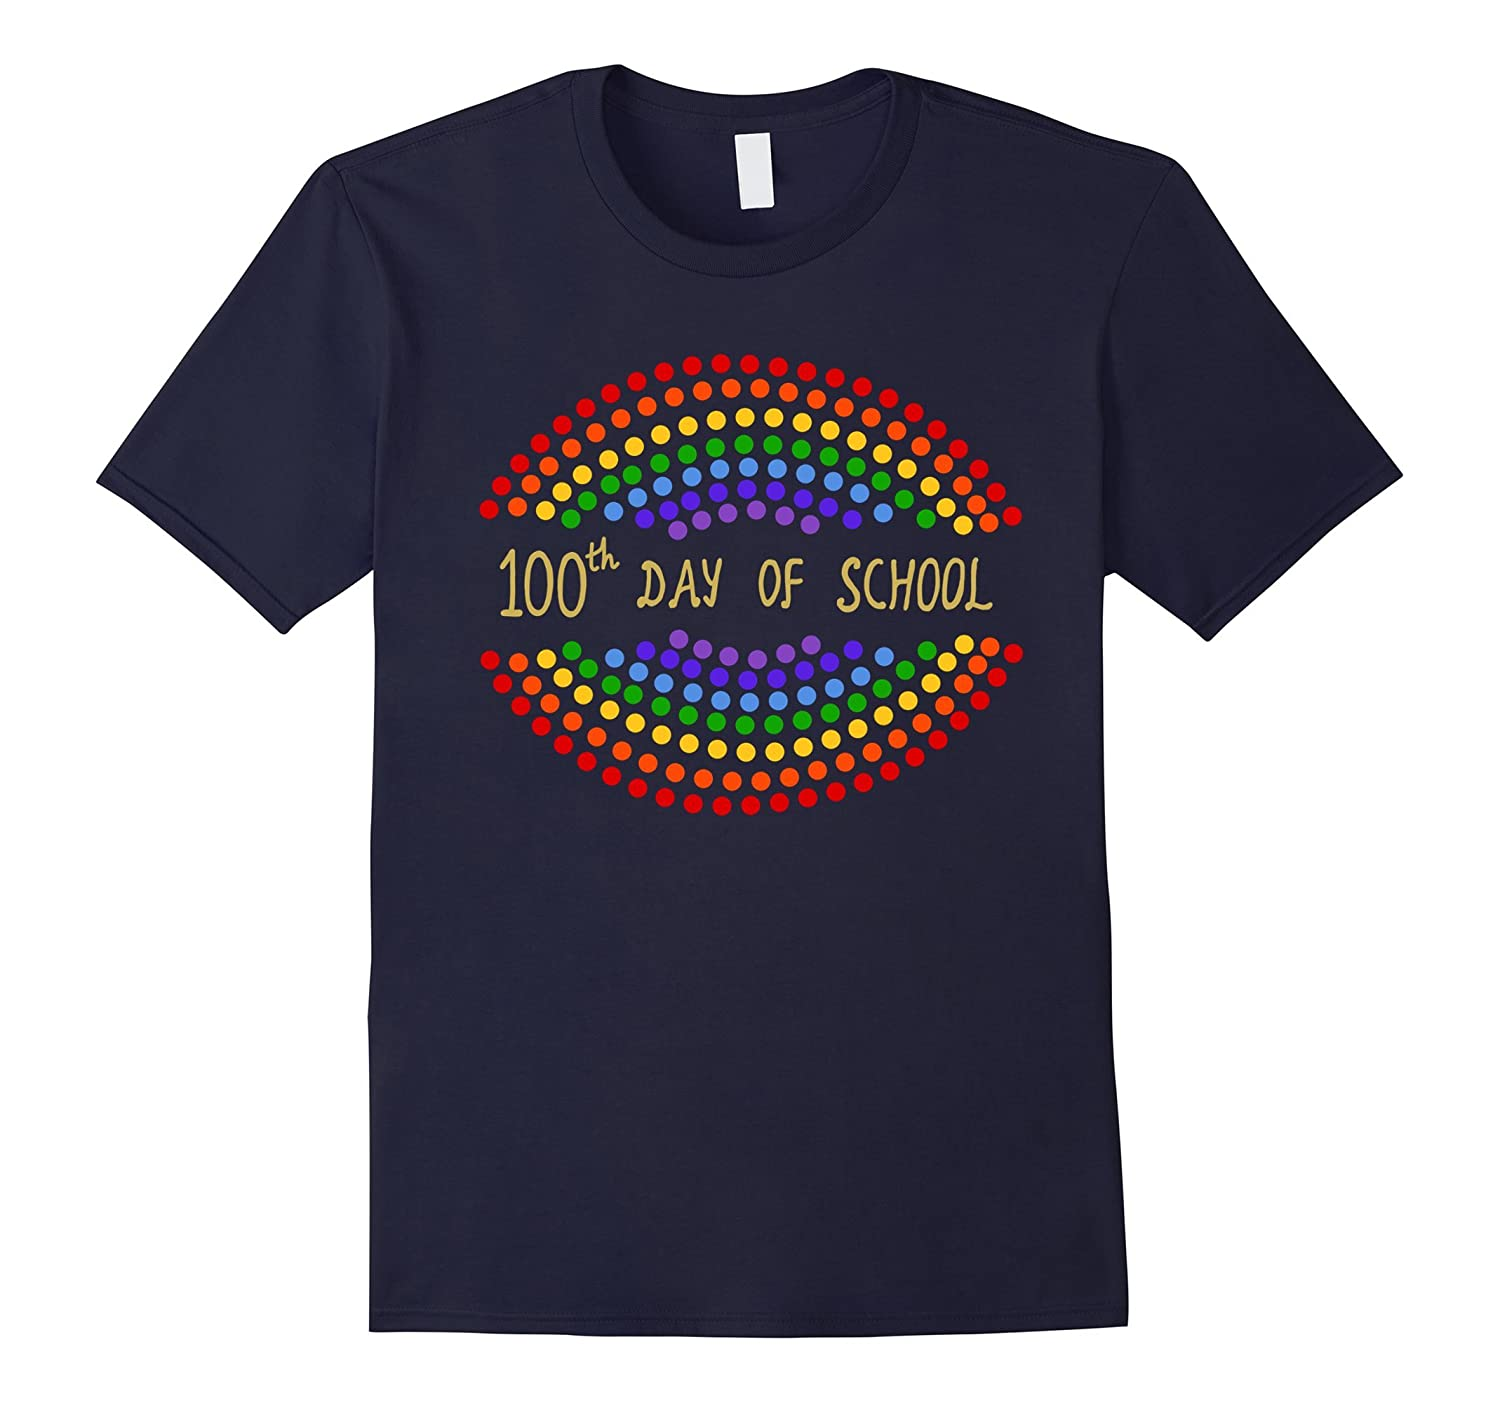 100th Day of School T-Shirt for Teachers and Kids-ah my shirt one gift